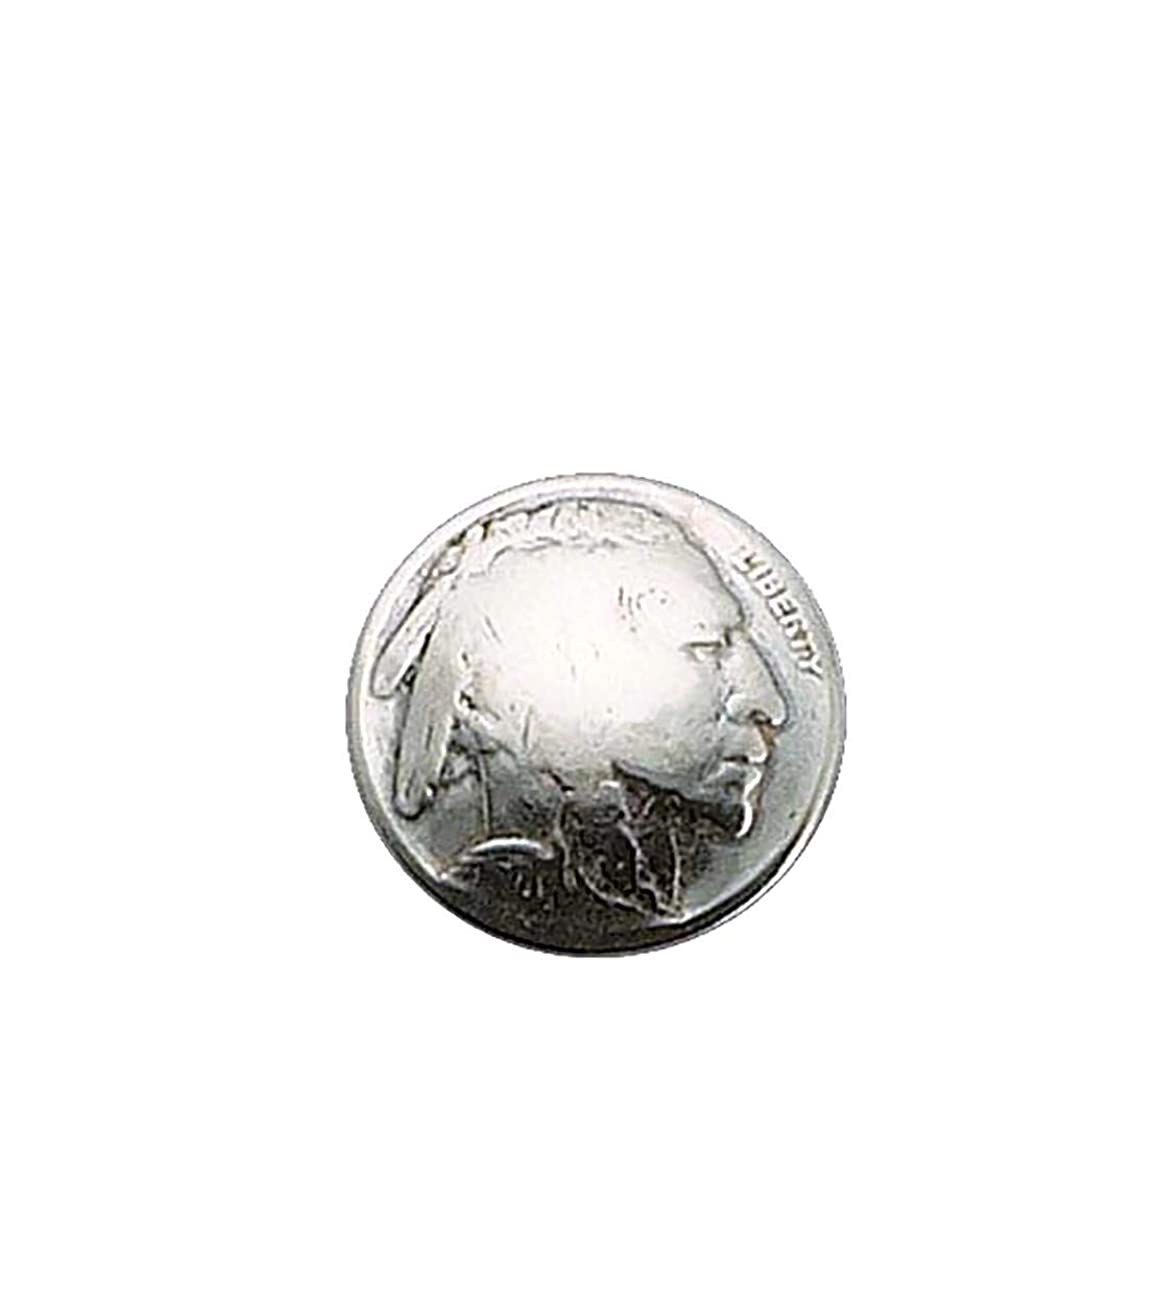 Nickel Genuine Indian-Head Coin Button Pack of 4 Findings